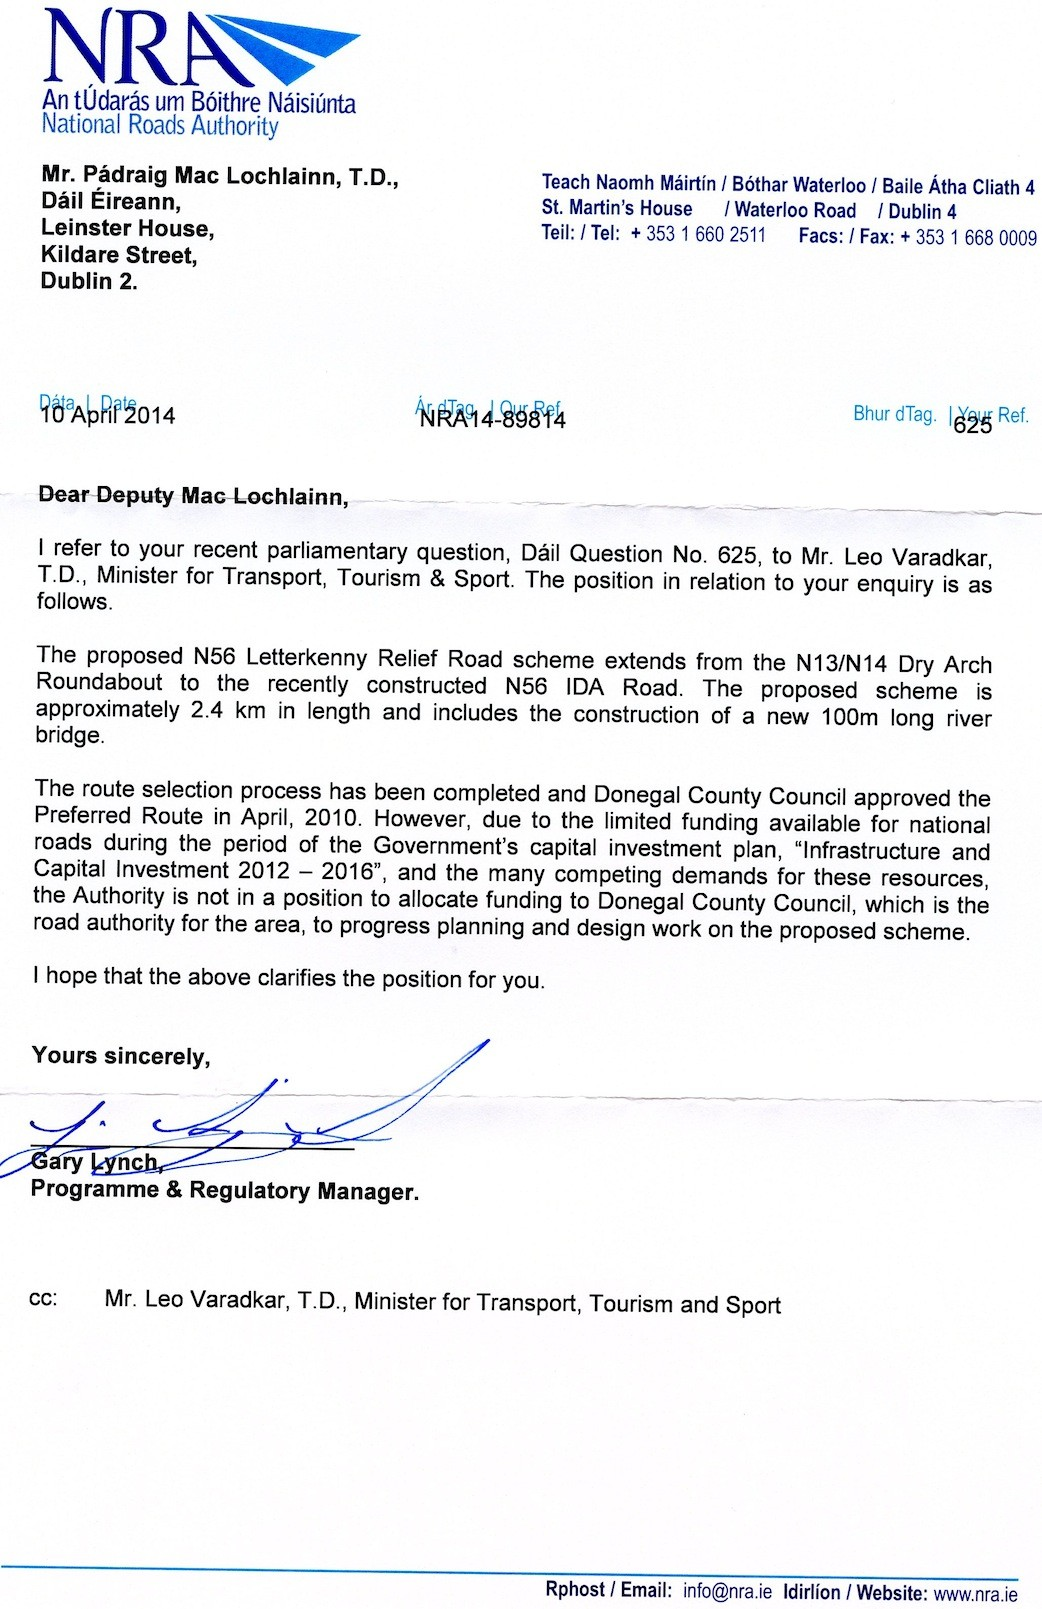 The letter sent to Deputy MacLochlainn and Minister Leo Varadkar.